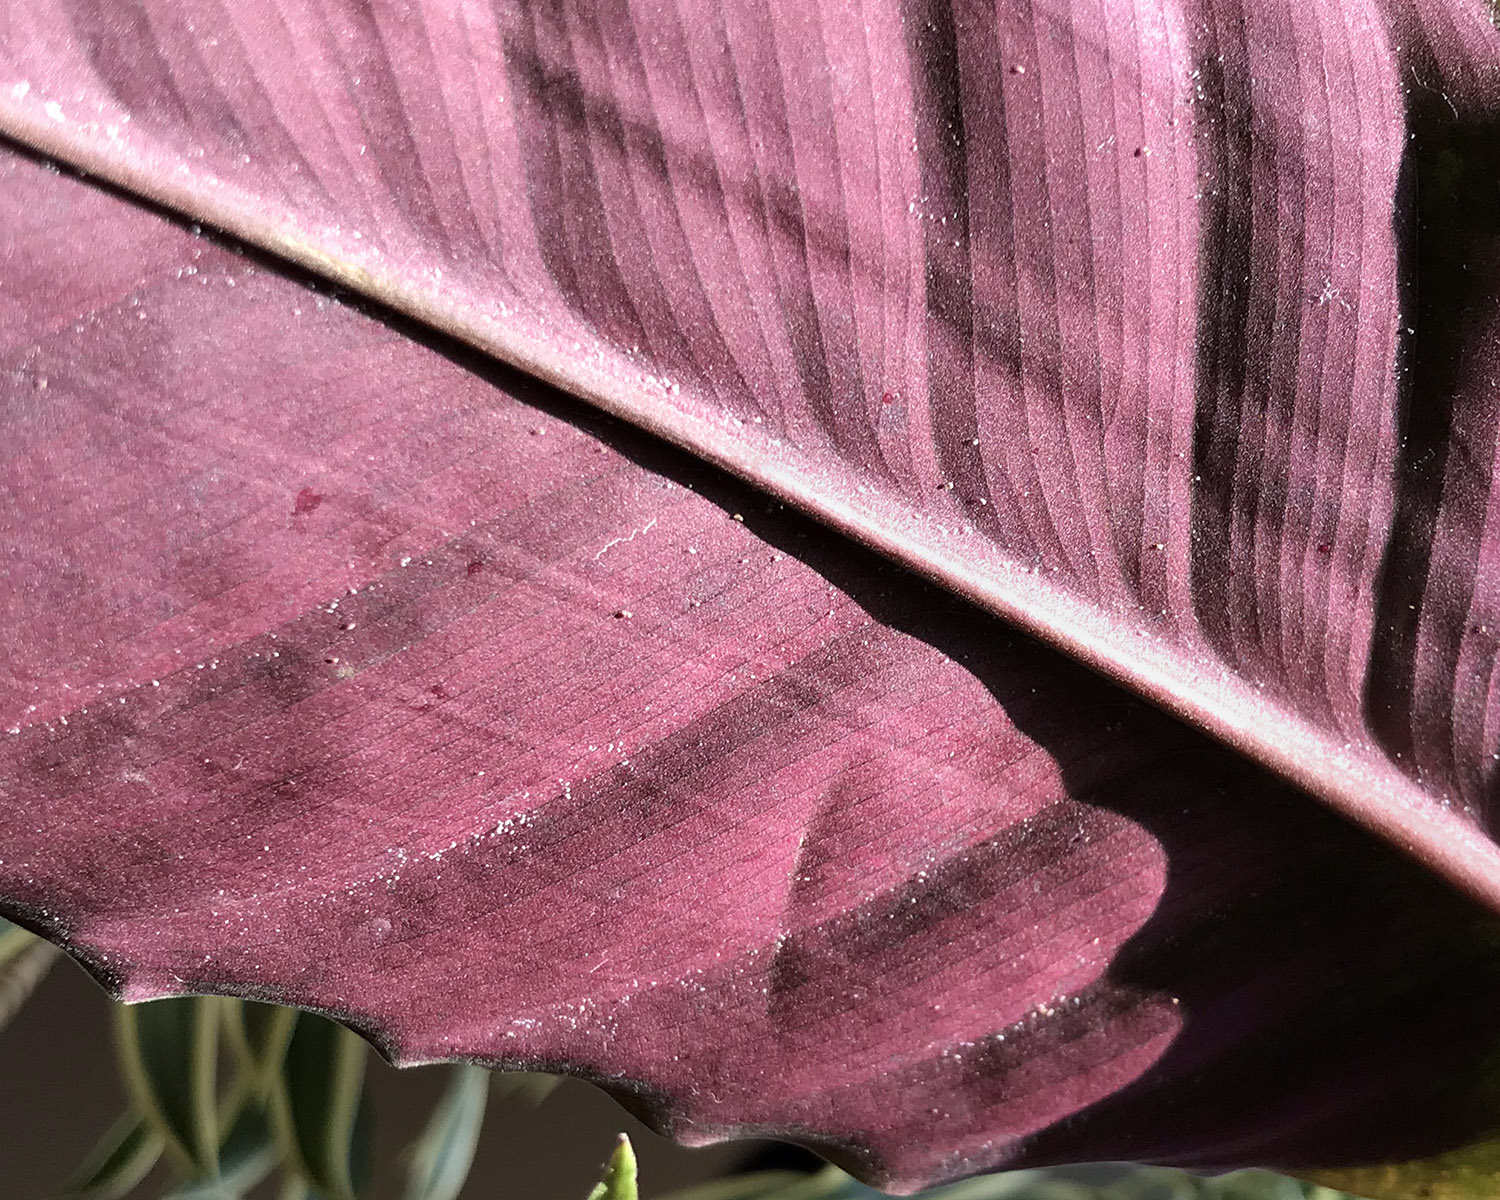 Spider mites are the tiny white spots on the underside of this Calathea leaf.